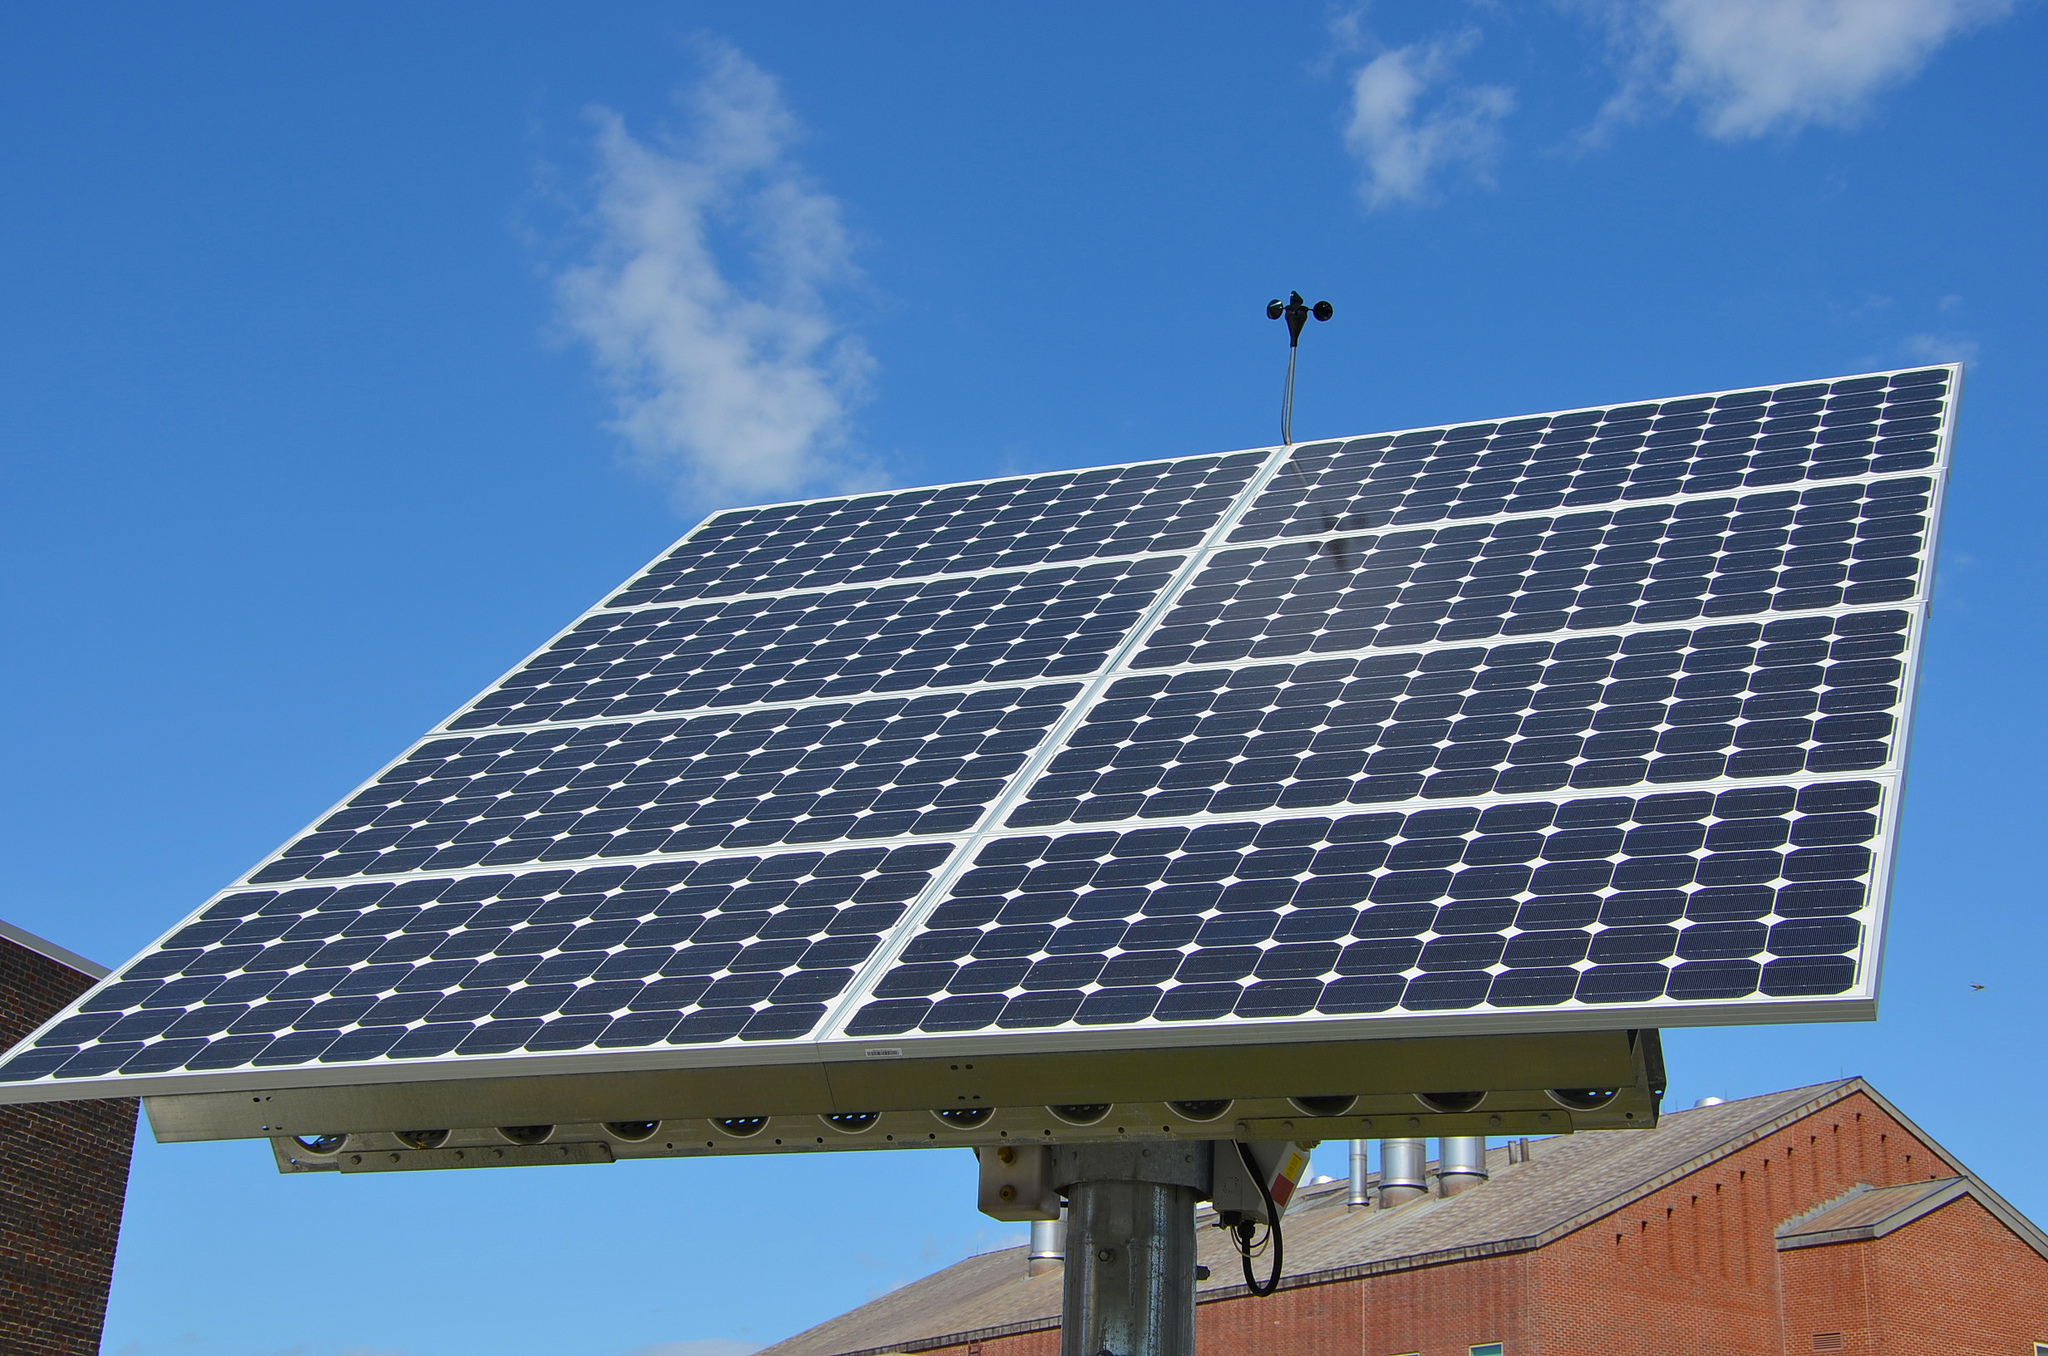 Why Solar Panels Are Suddenly Sprouting On Everyone's Roofs